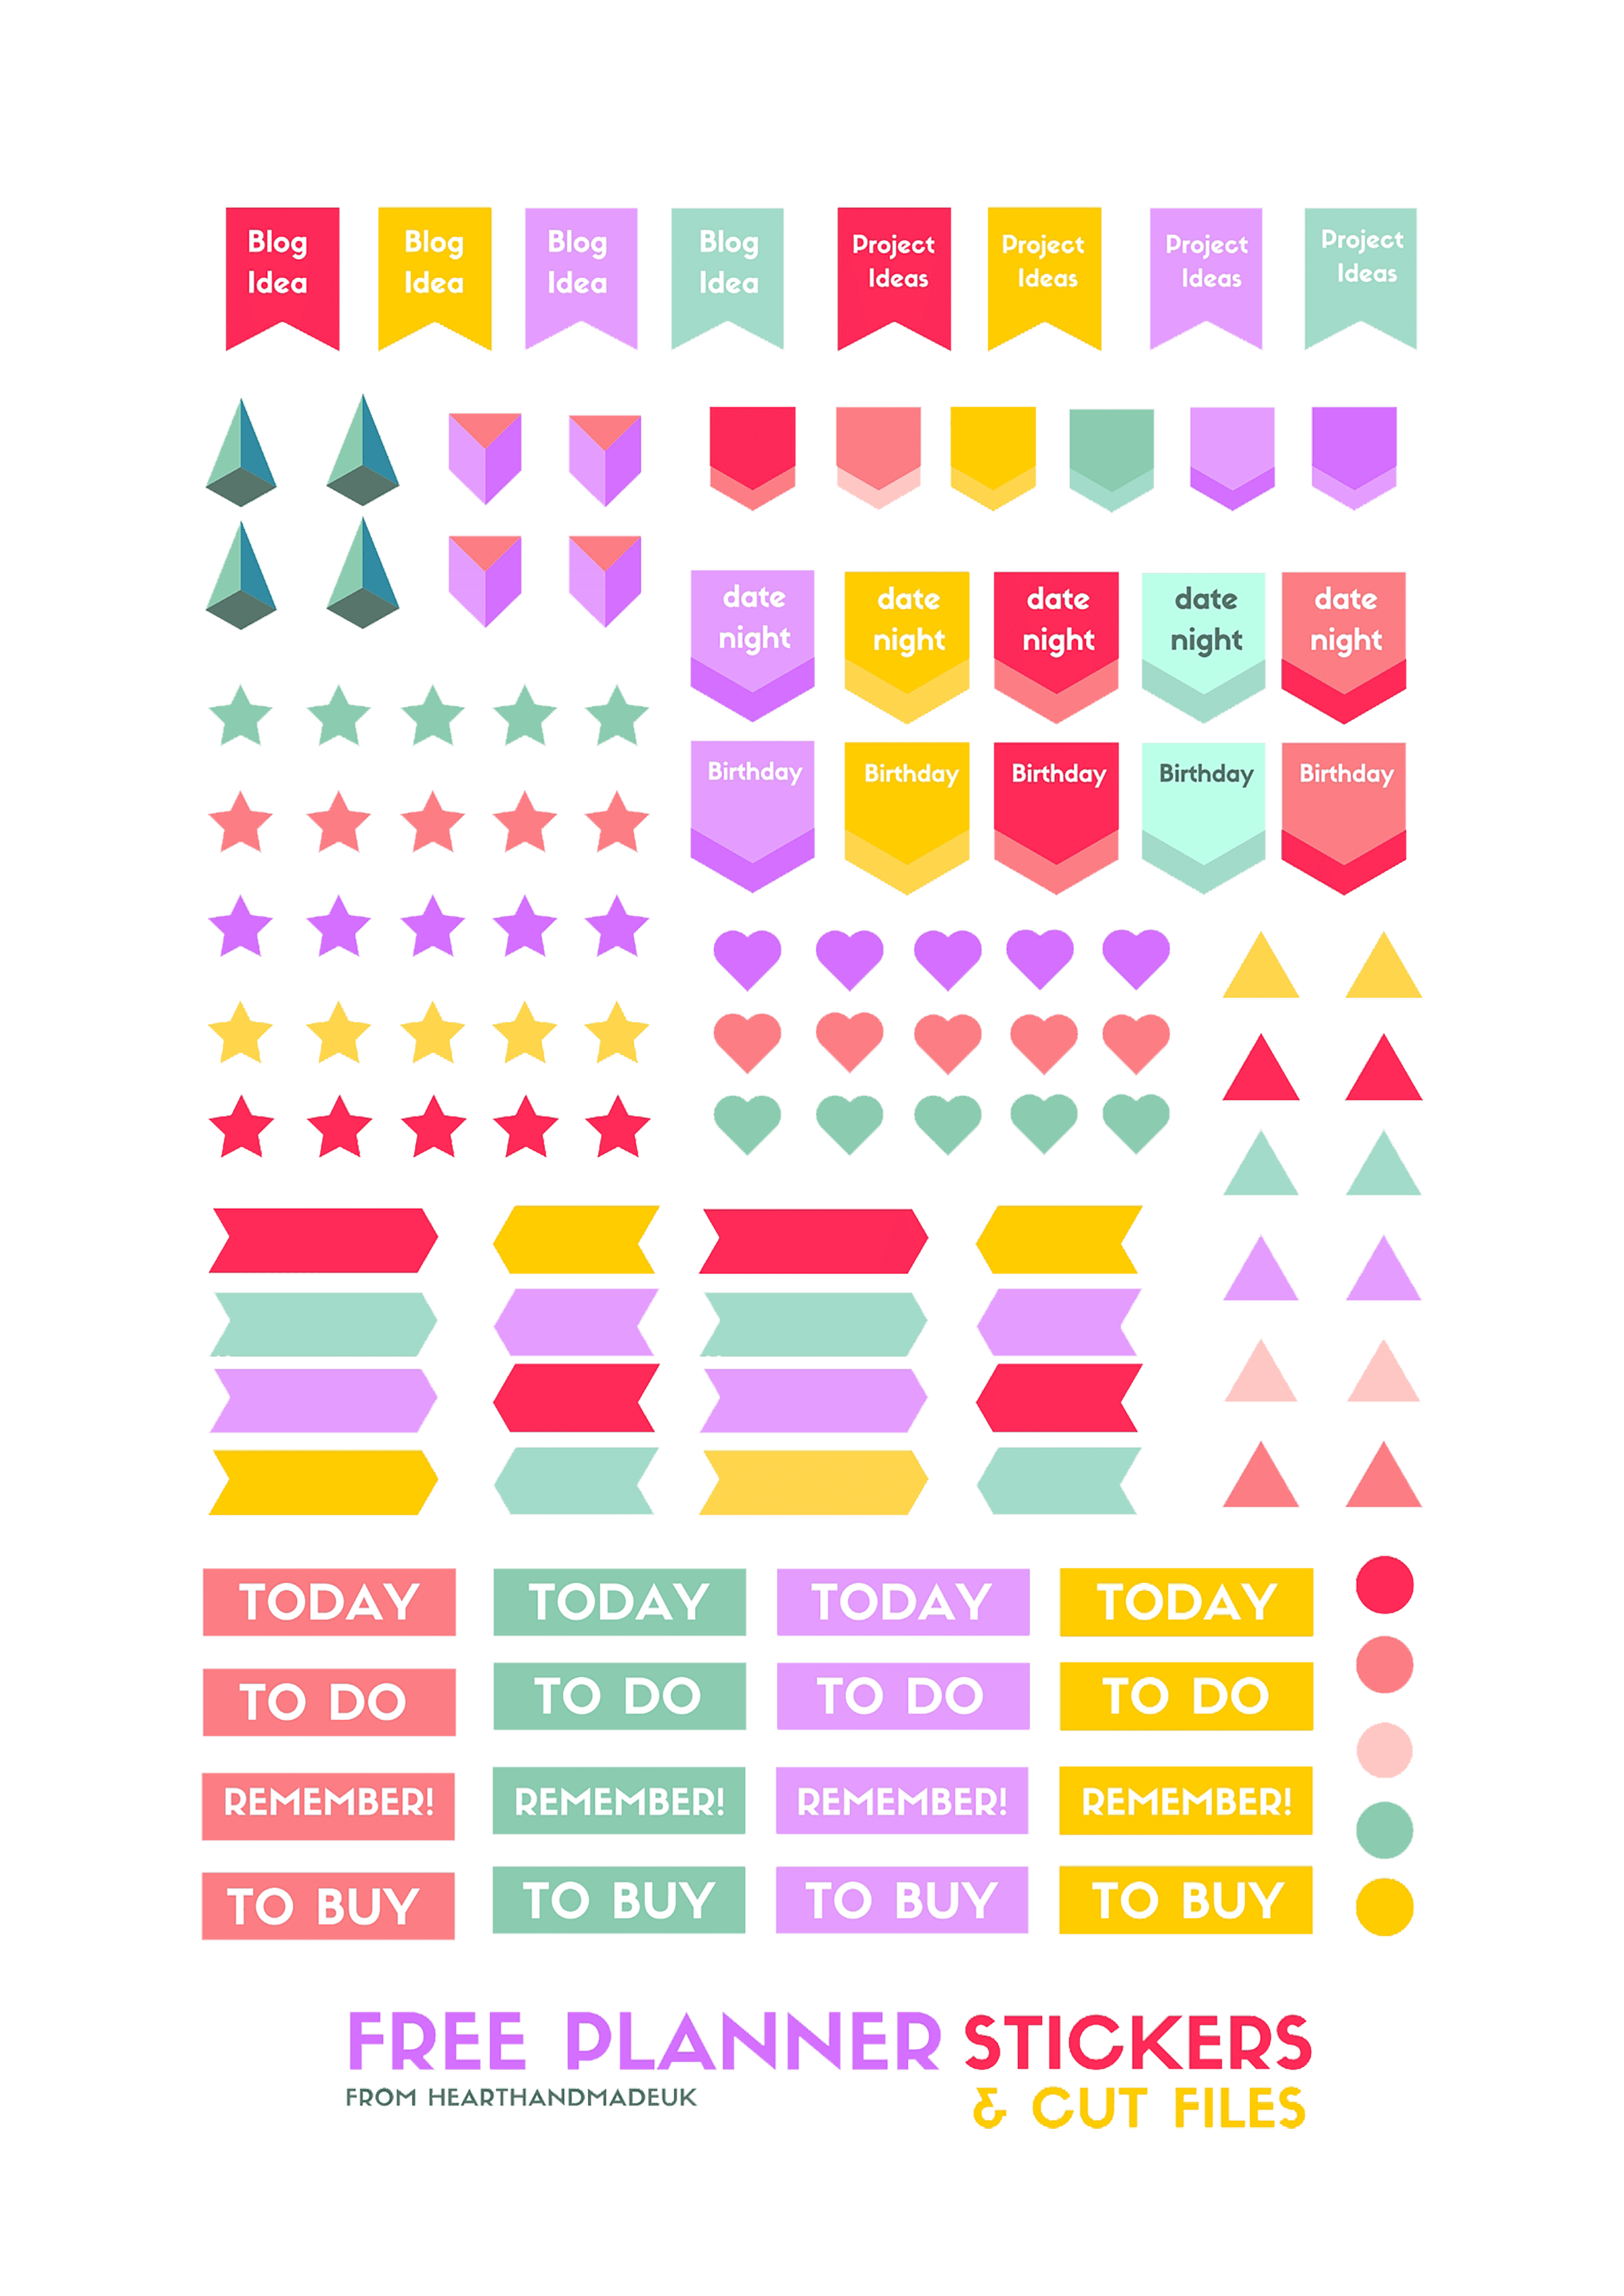 Planner checklist png. Free stickers pixels cover